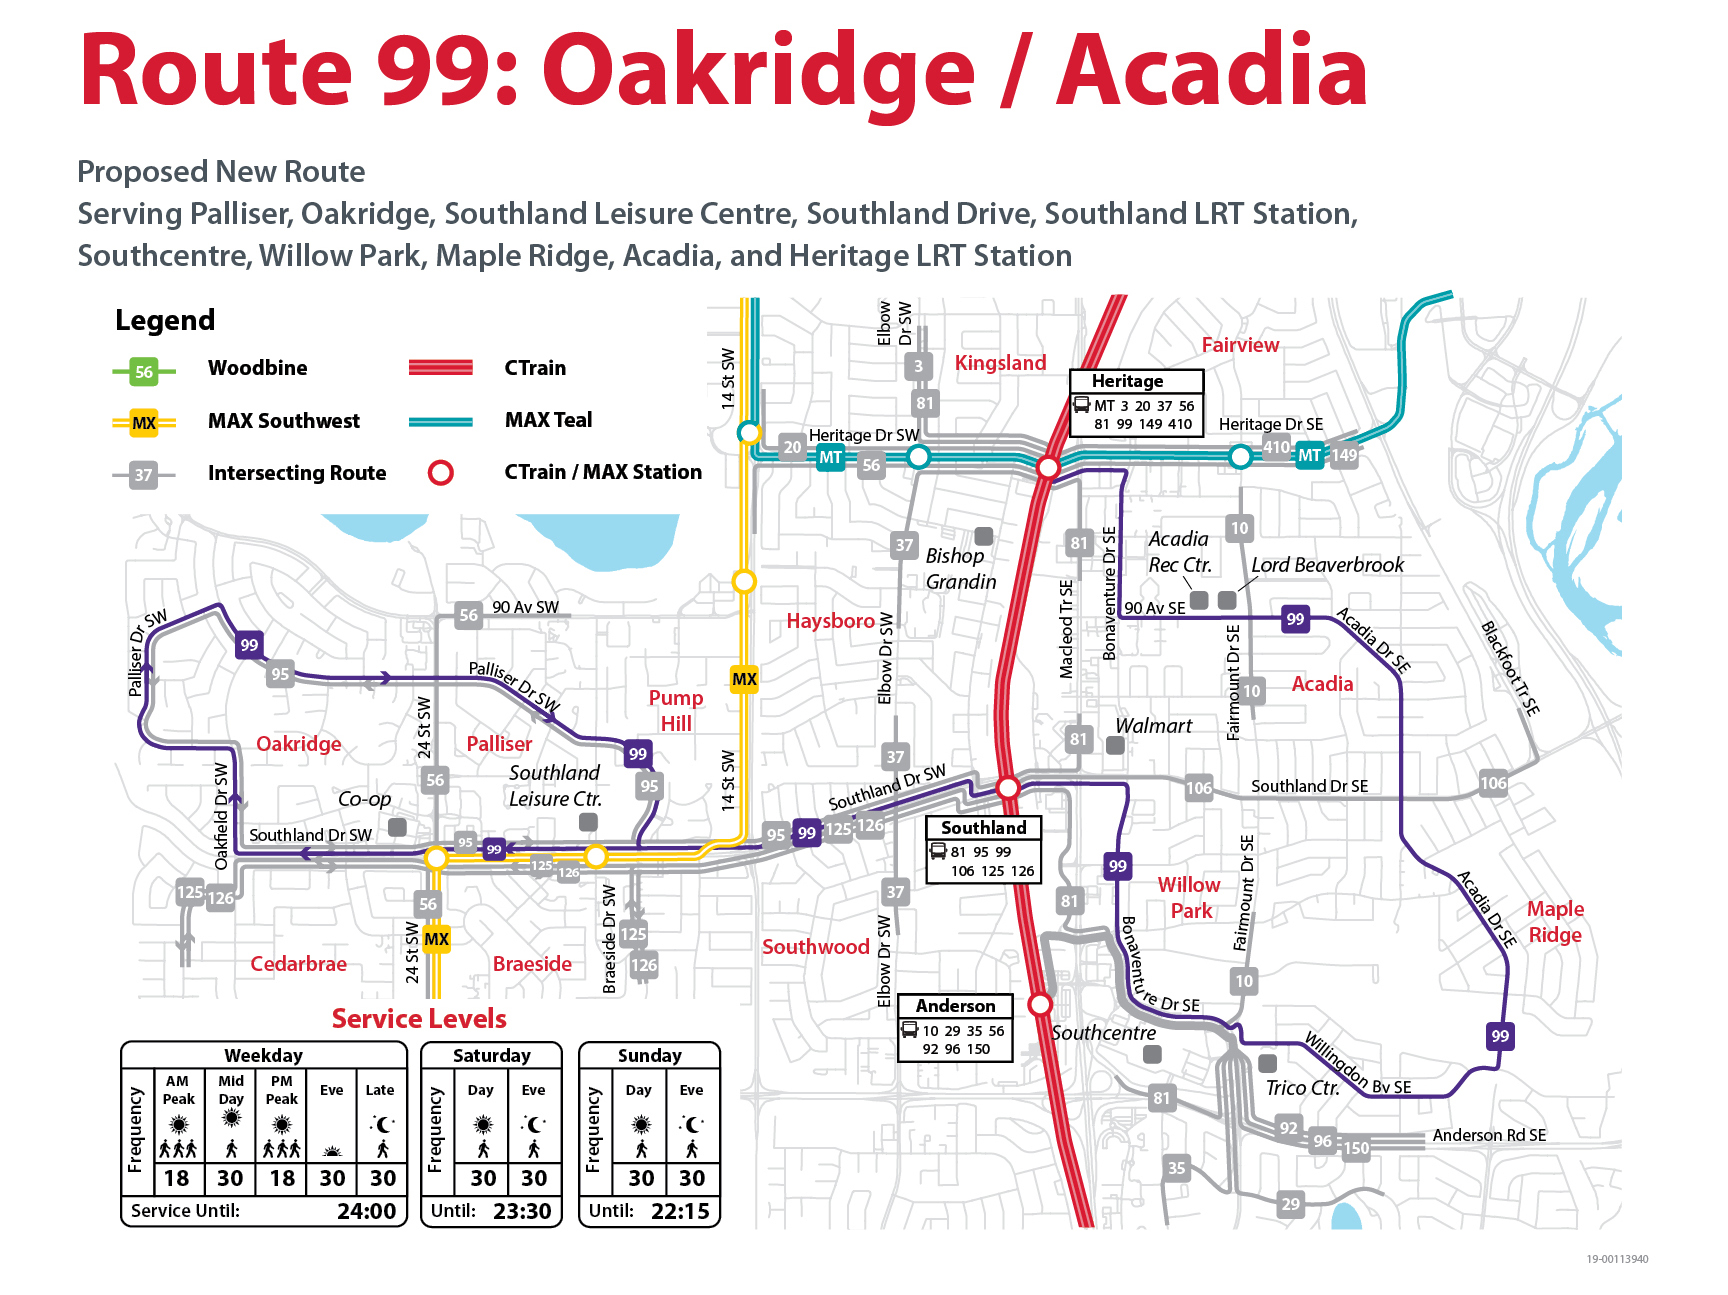 Proposed Changes to Route 99